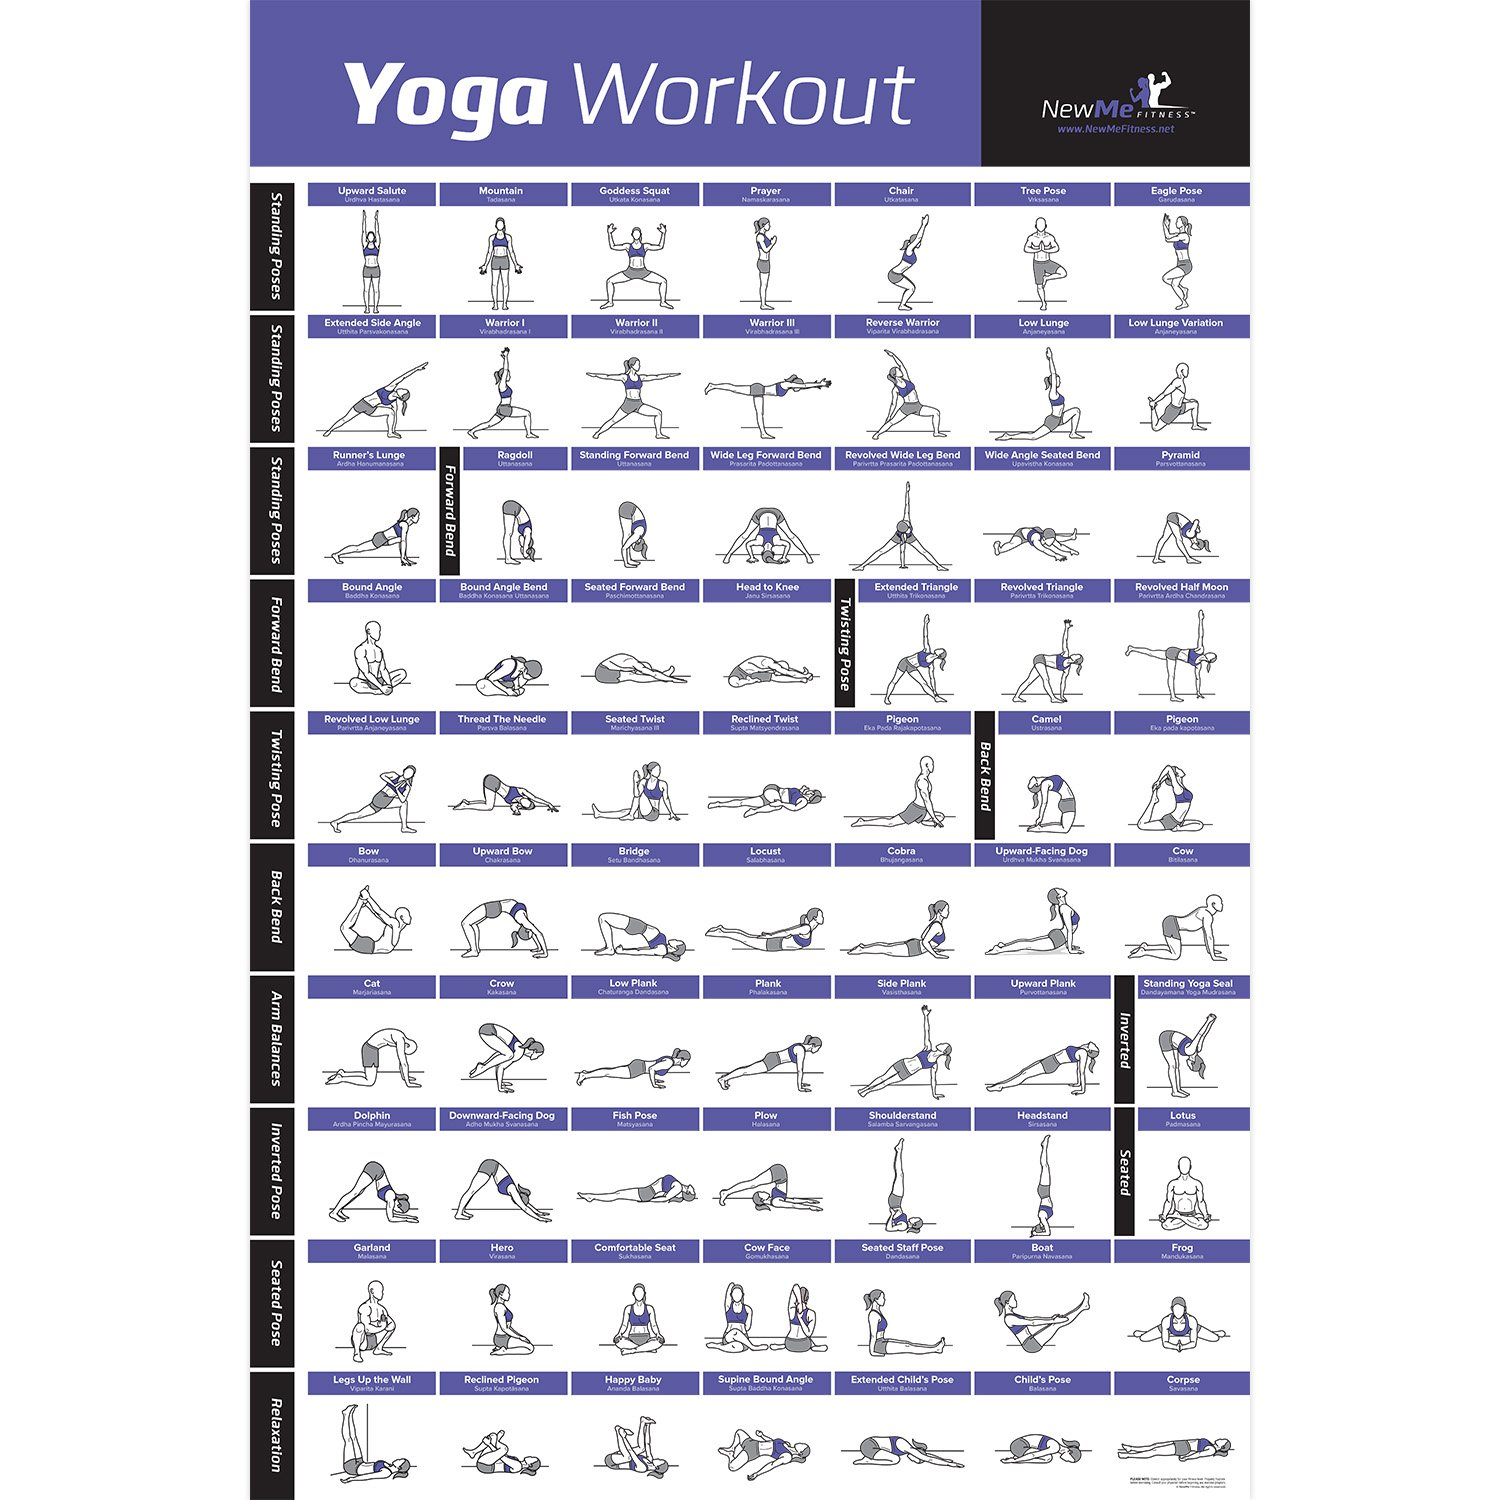 Amazon yoga pose exercise poster laminated premium amazon yoga pose exercise poster laminated premium instructional beginners chart for sequences flow 70 essential poses sanskrit english geenschuldenfo Choice Image